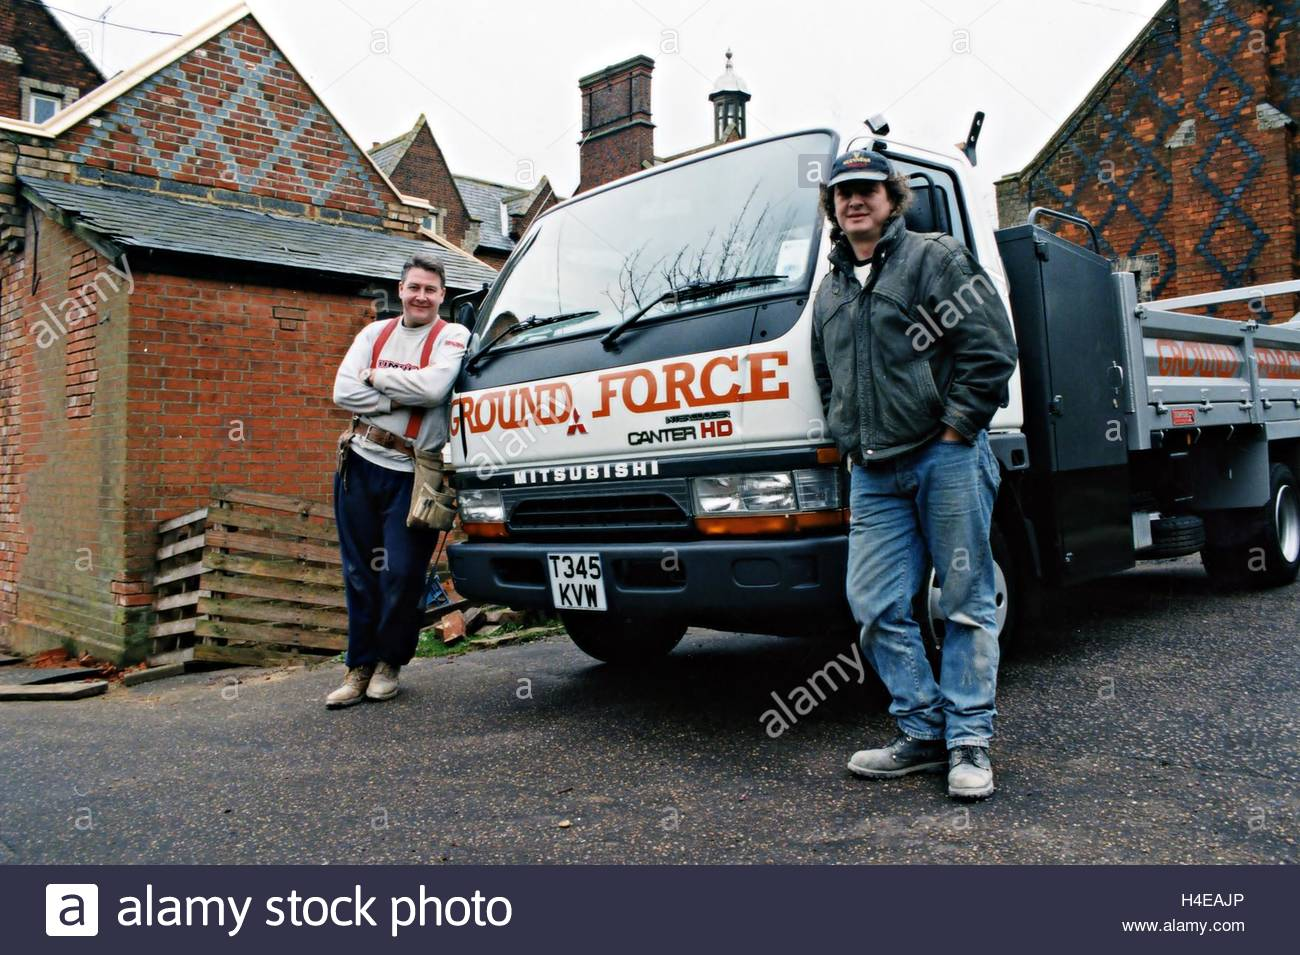 Tommy Walsh & Will Shanahan with the Groundforce Van. Stock Photo